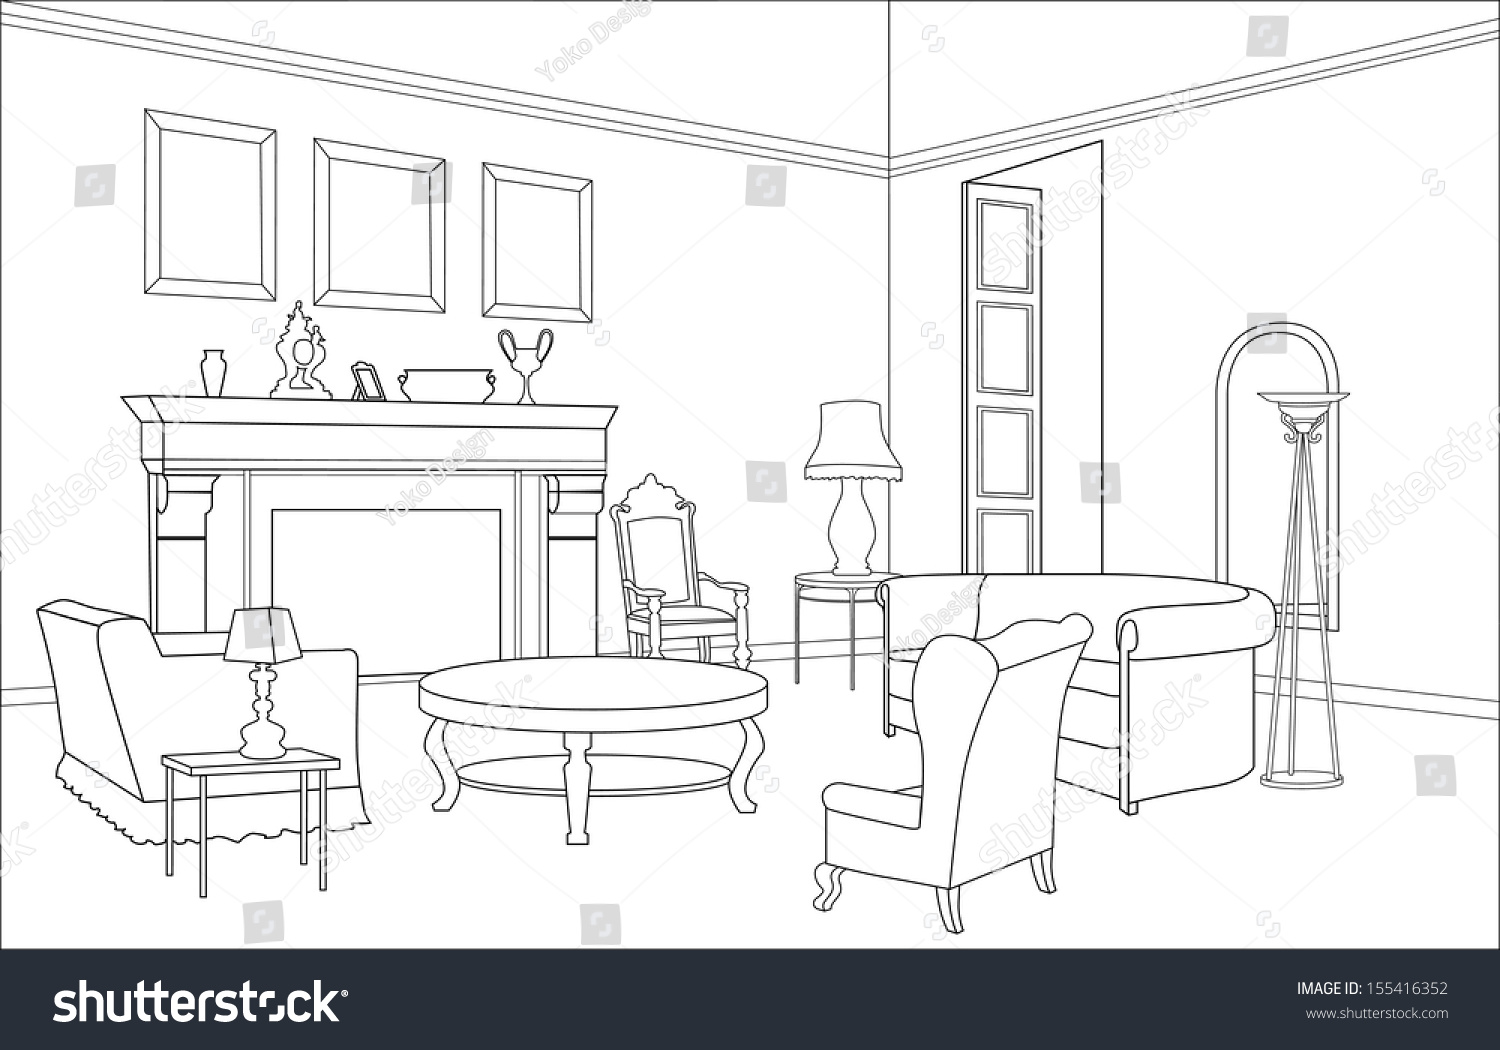 Drawing Room Editable Vector Illustration Of An Outline